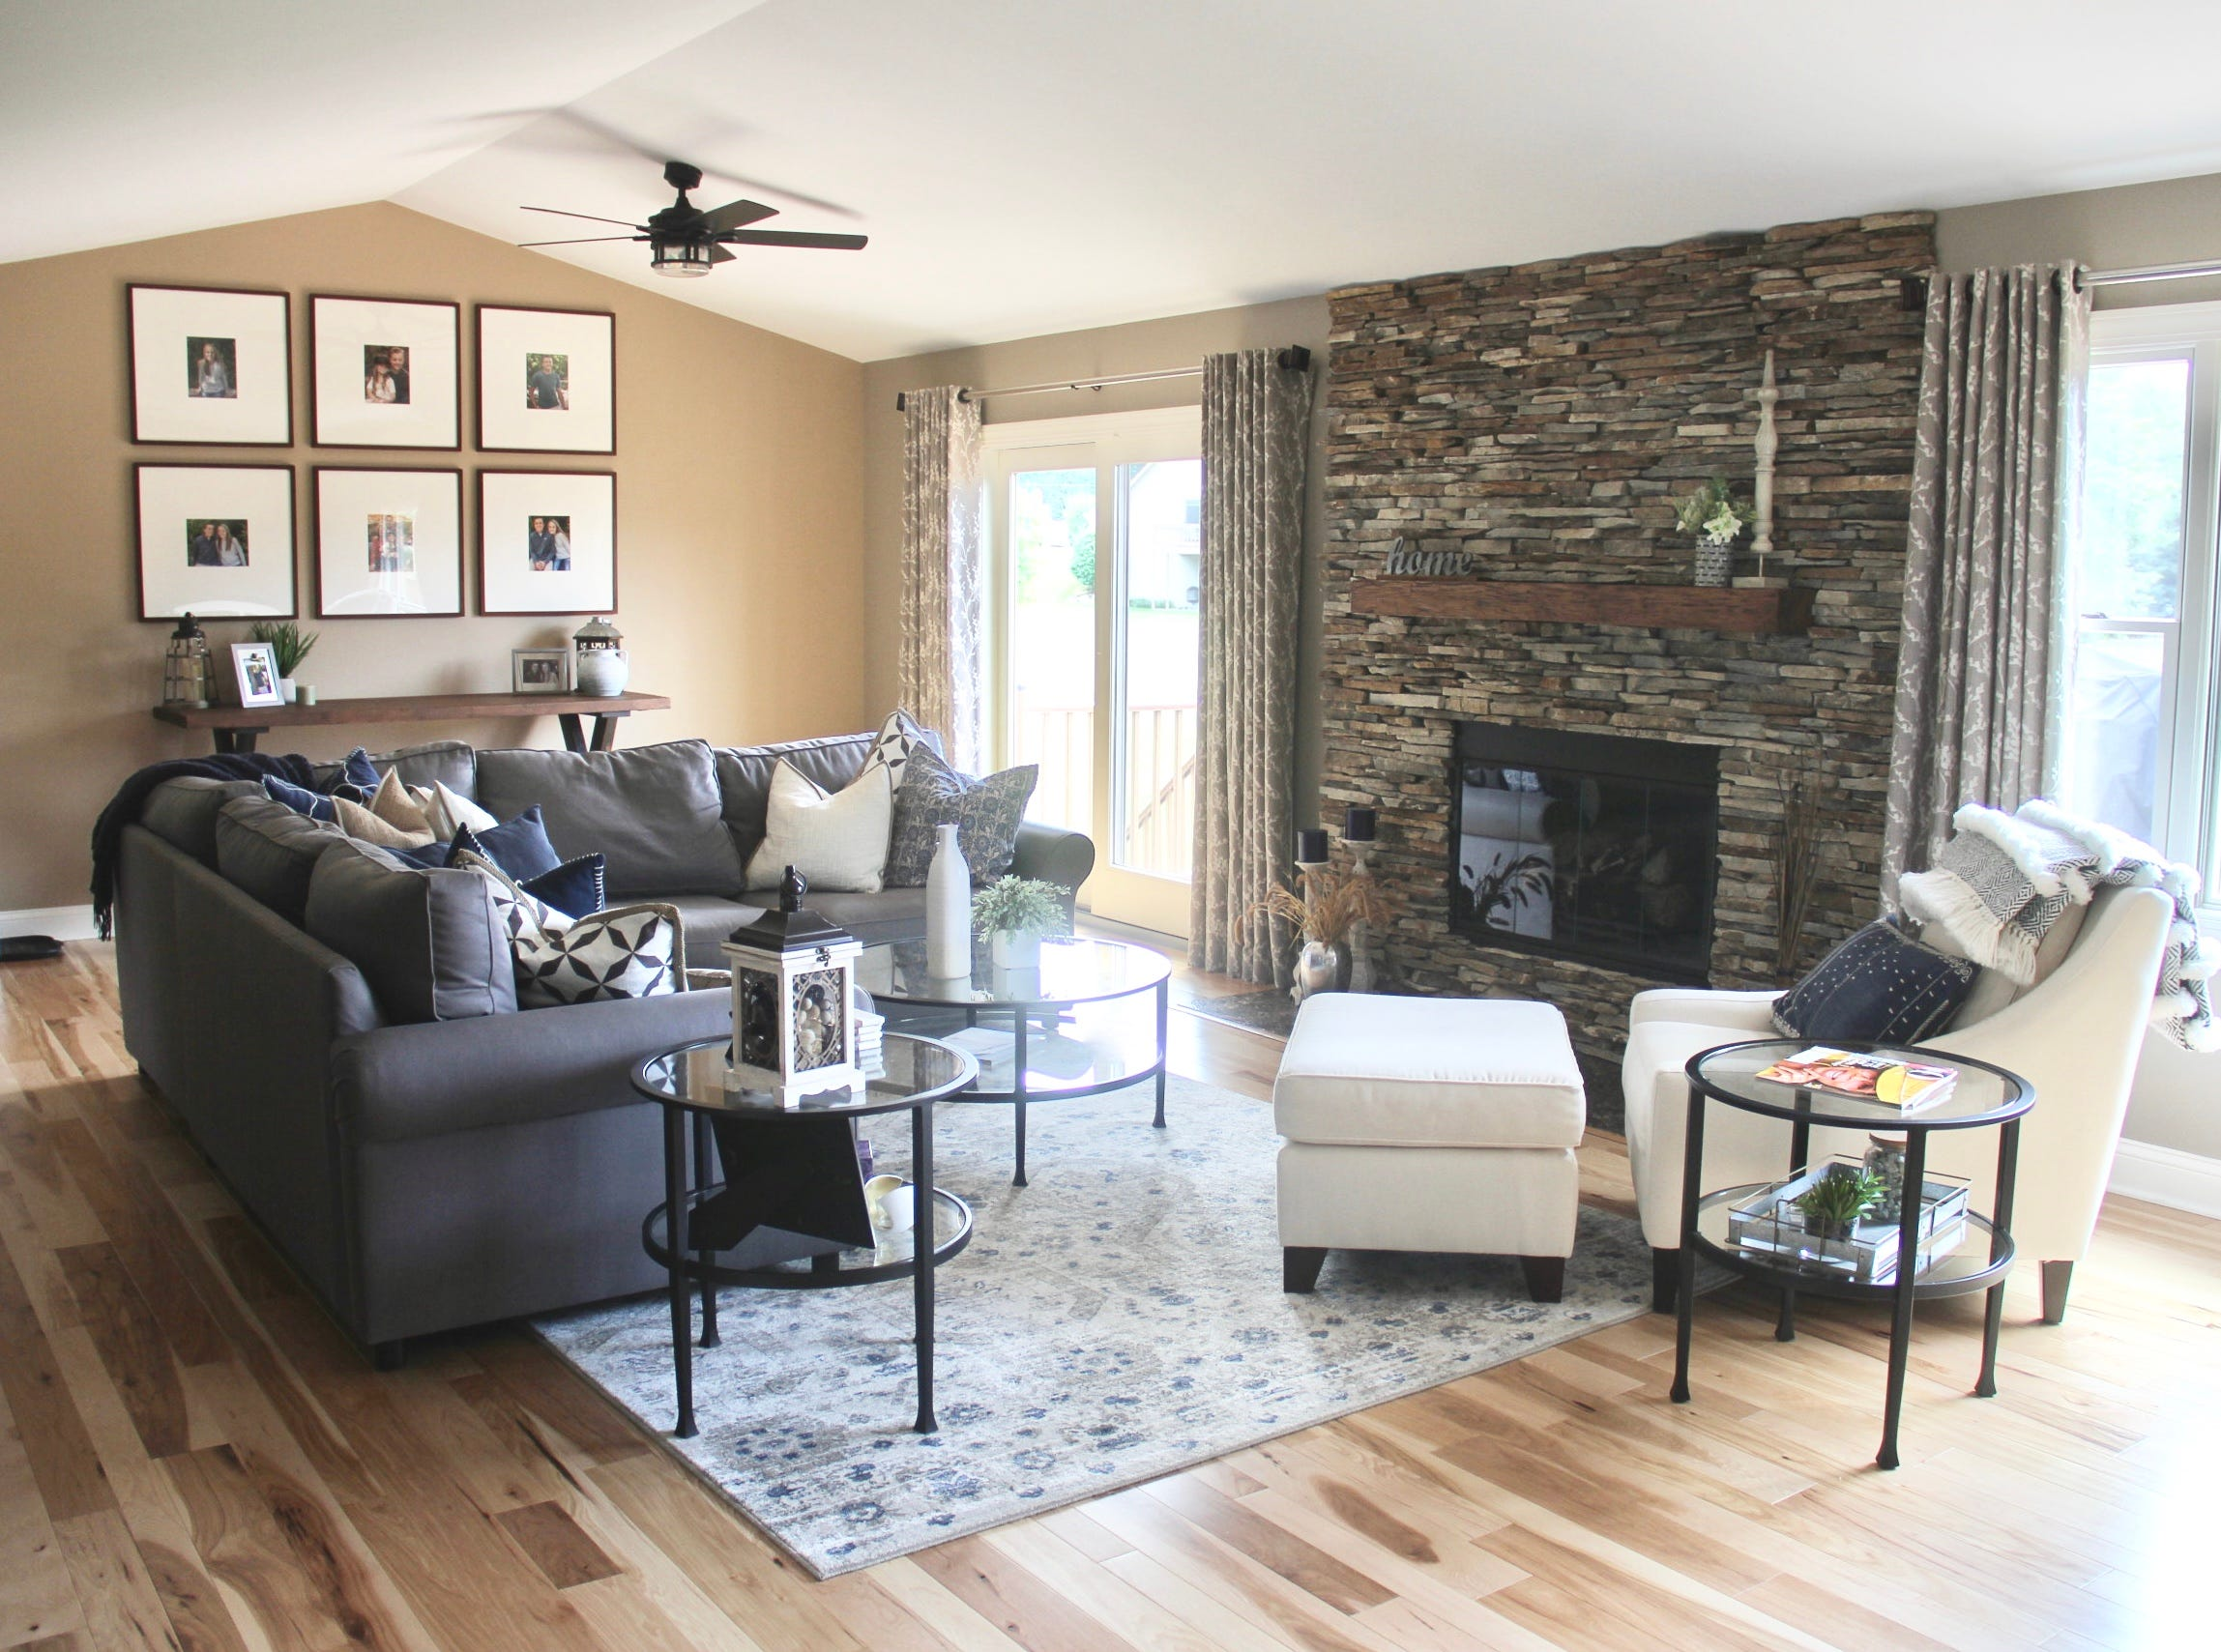 What was once a tall bare wall in this great room has become a focal point, which Sarah Macklem says can easily be achieved with a budget of around $500. All it takes is a console, a gallery wall of family photos and some decorative accessories.